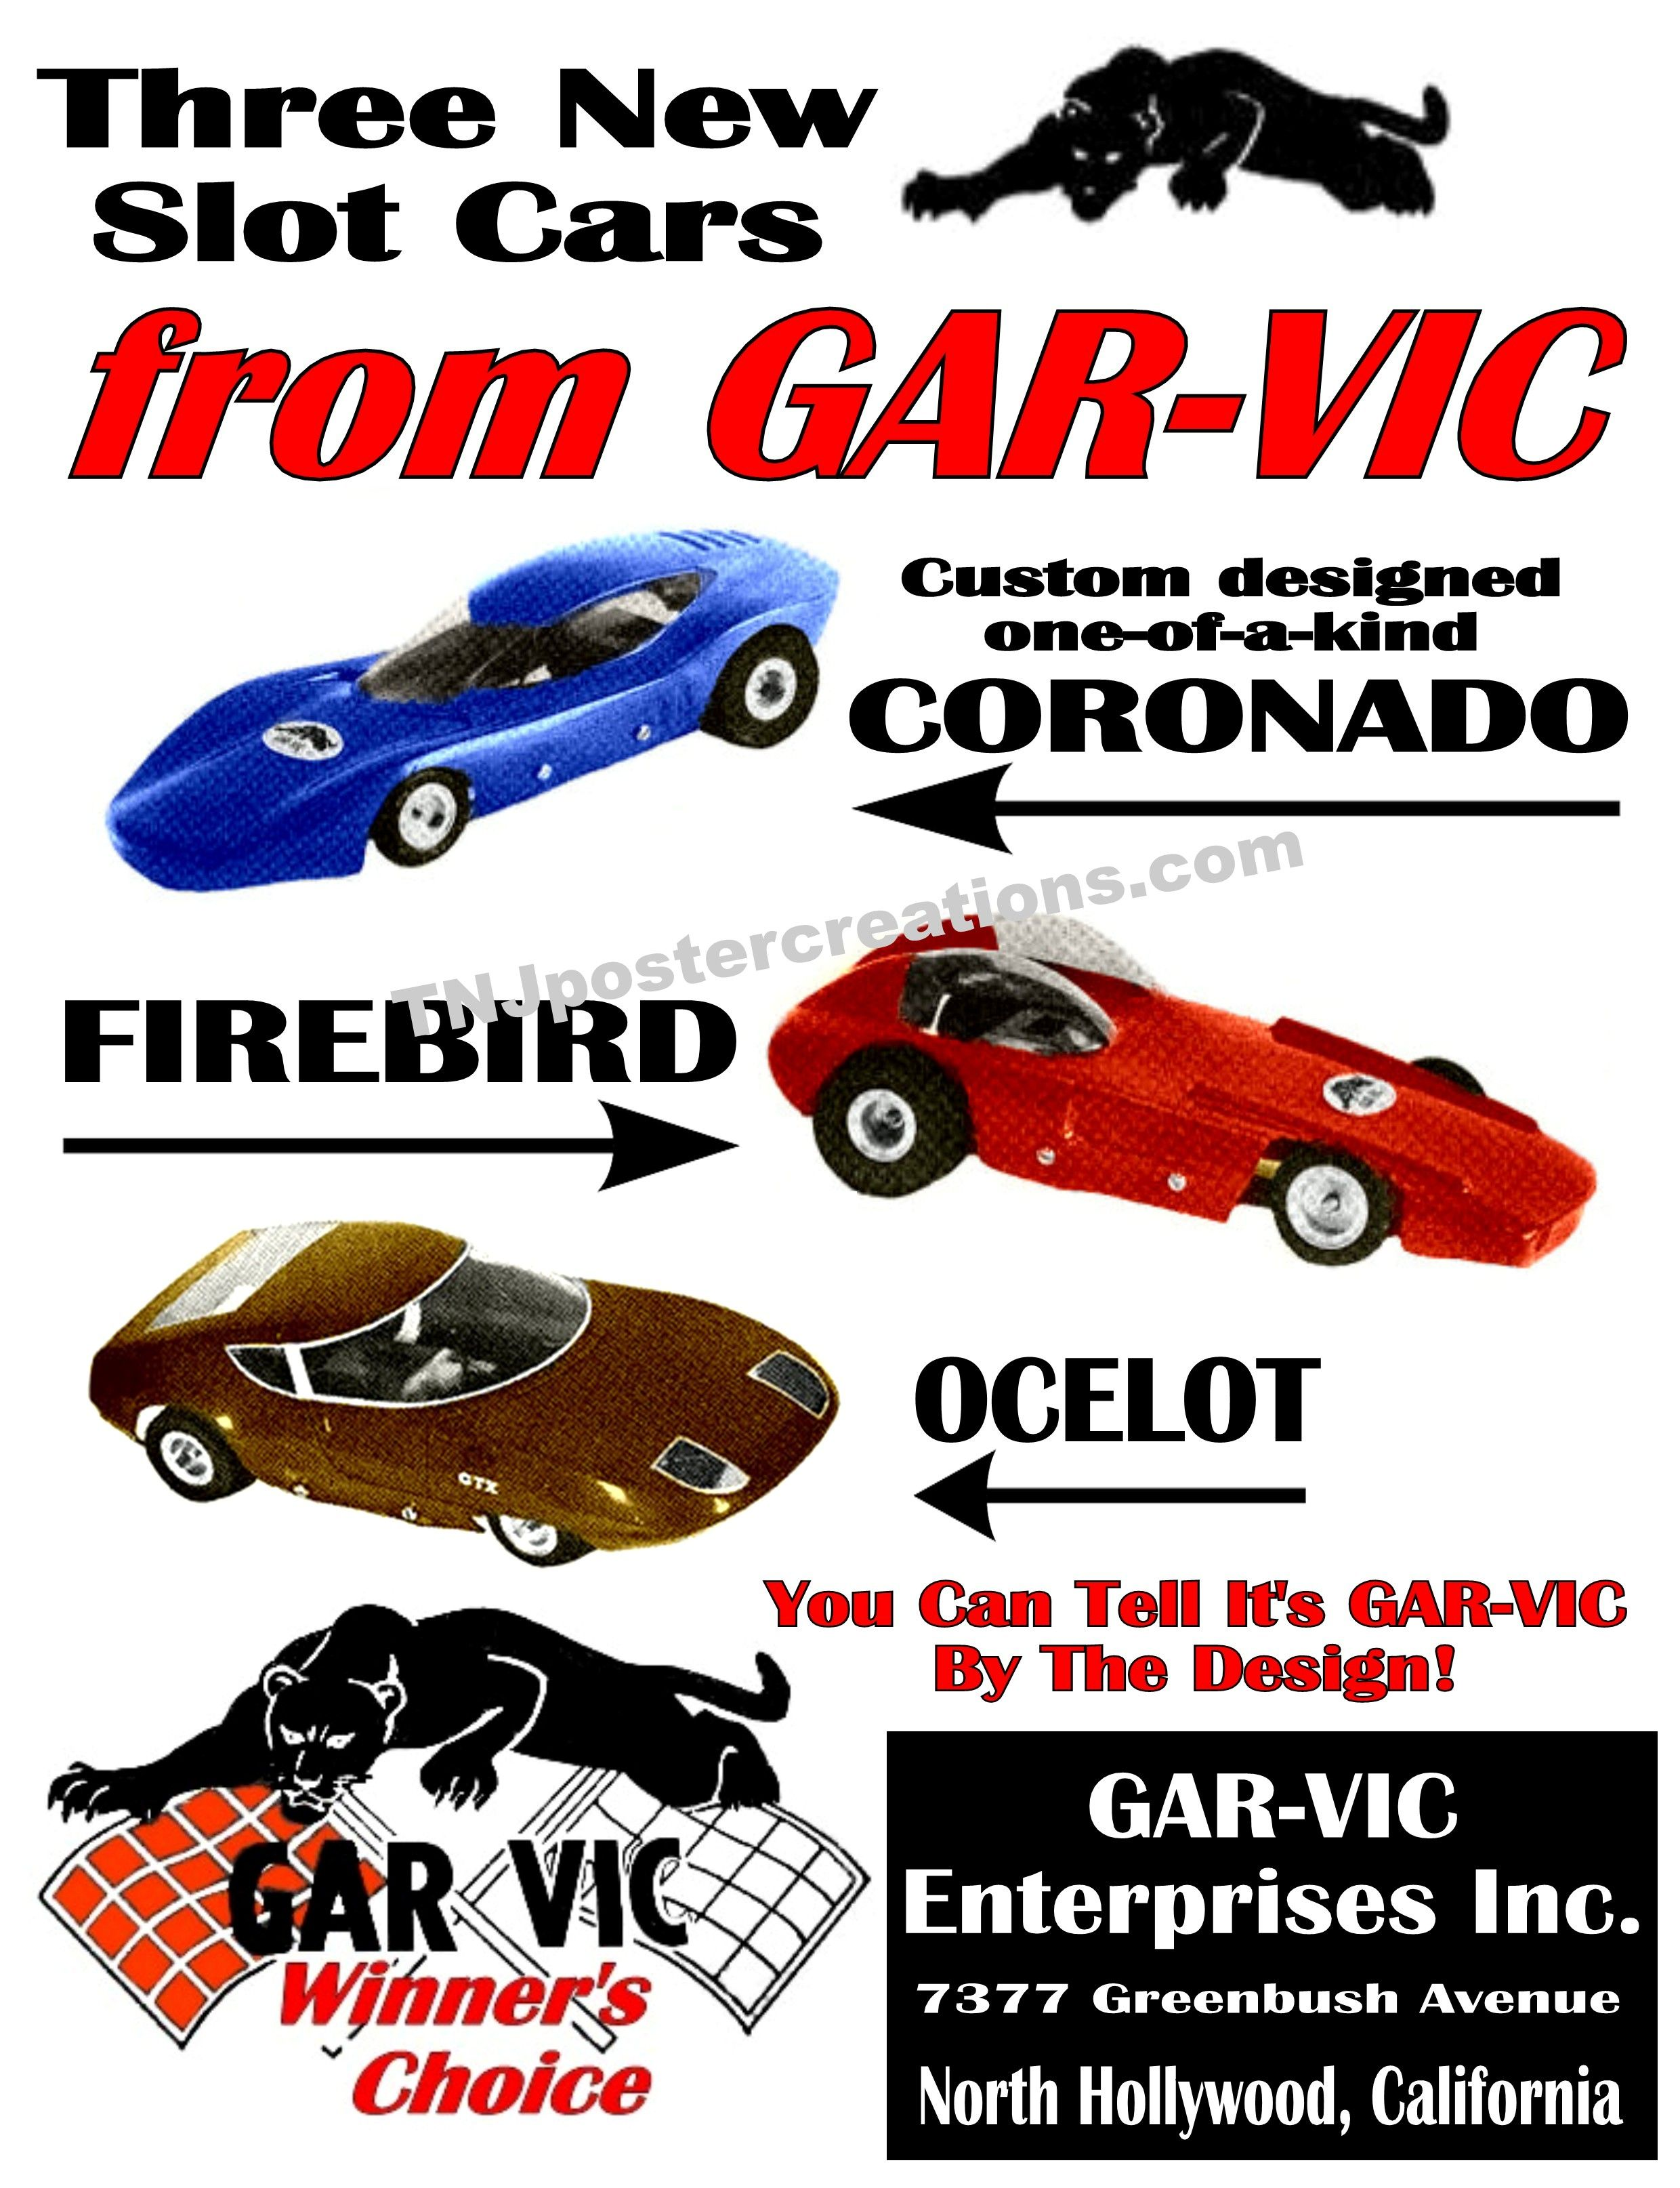 Gar-Vic slot cars from the 1960's  Courtesy of www